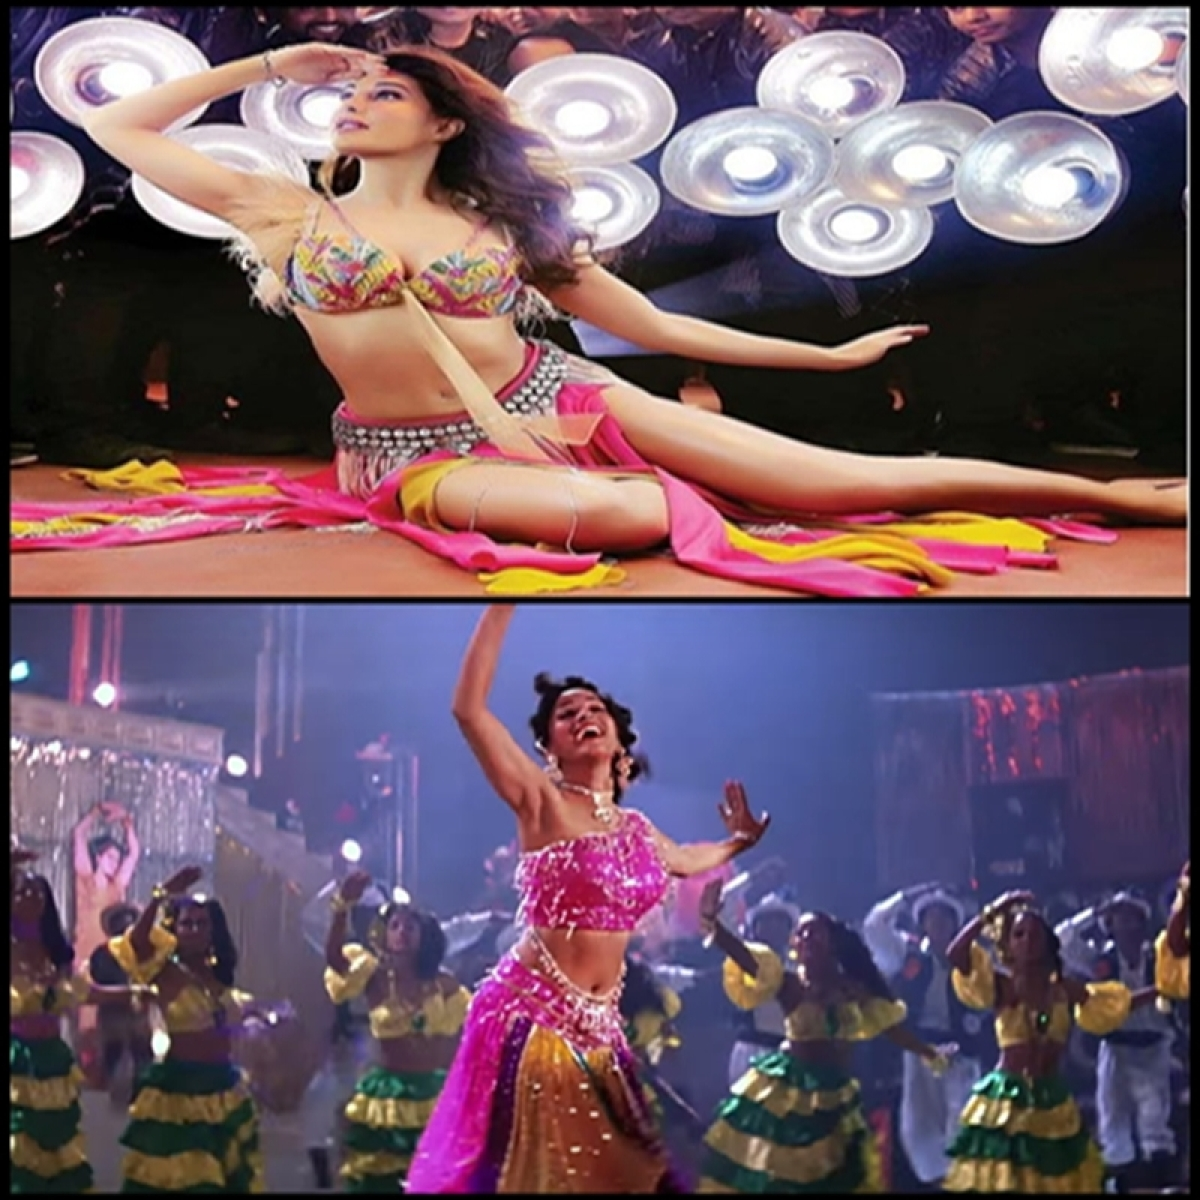 Baaghi 2: Does Jacqueline Fernandez's first look of Ek Do Teen do justice to Madhuri Dixit's iconic number? Tell us